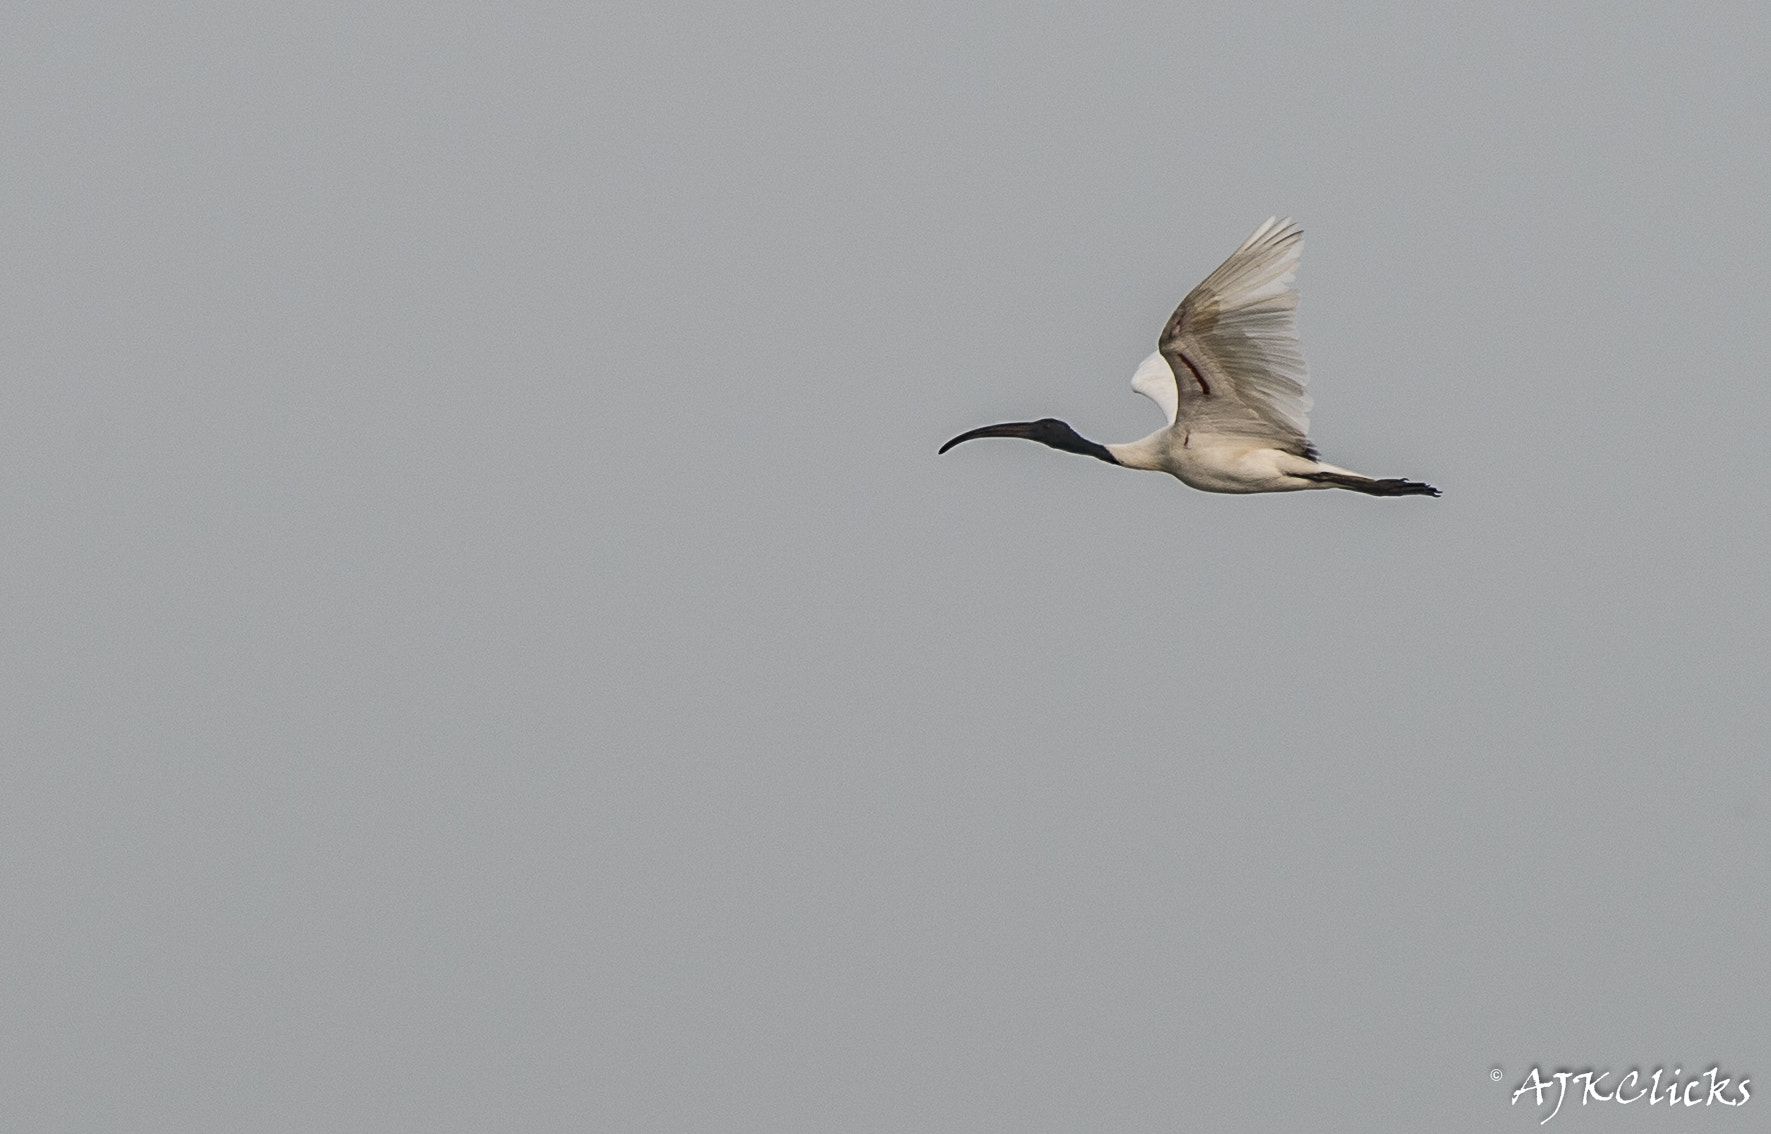 Photograph Black Headed Ibis in Flight by AJK Clicks on 500px